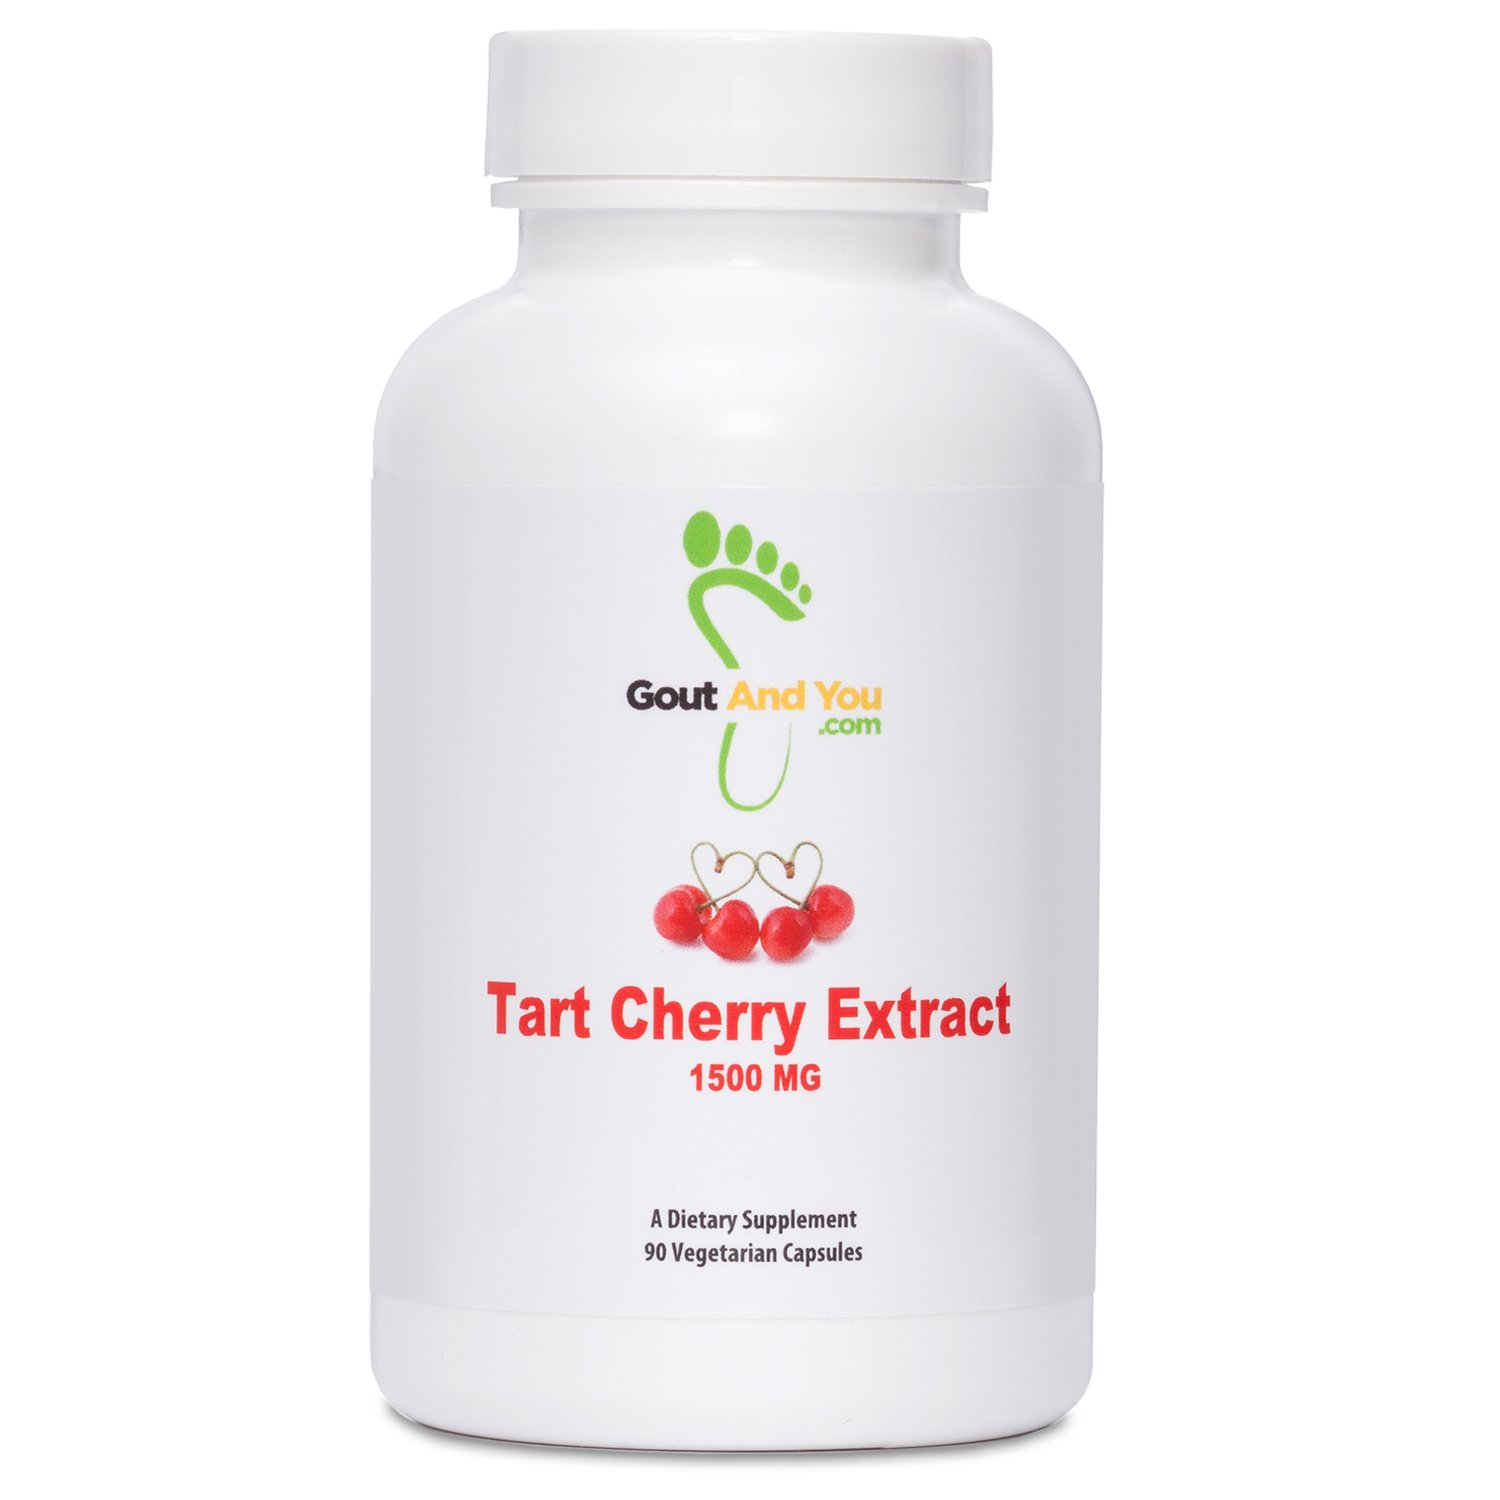 Tart Cherry Extract by GoutandYou - Highly Potent- 1500 mg - 90 Caps